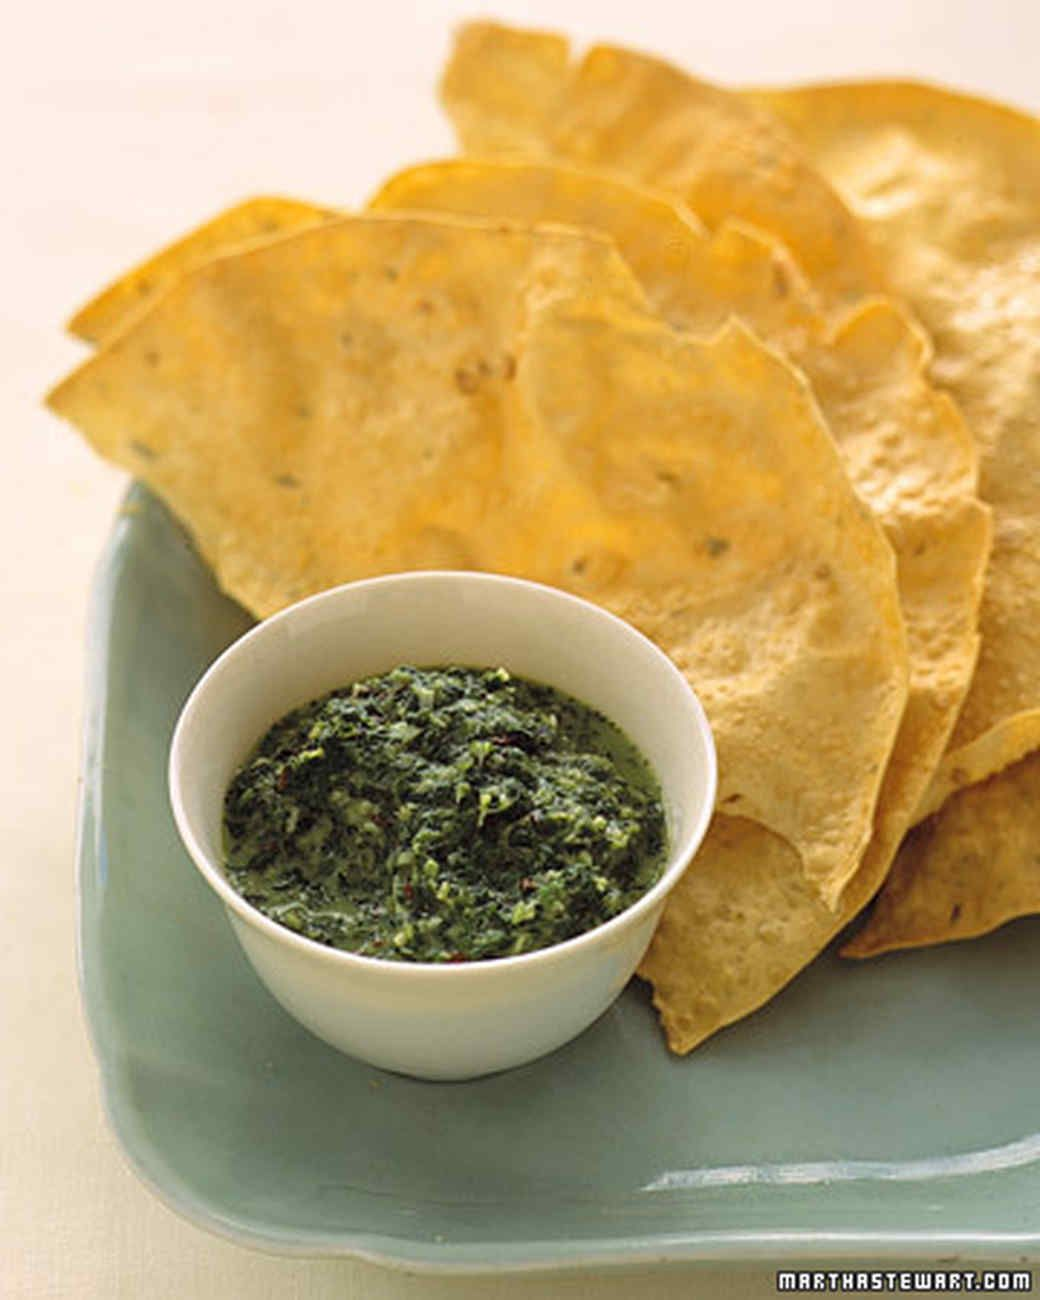 This salsa makes a wonderful dipping sauce. It can also be spooned over grilled shrimp, fish, chicken, or lamb.